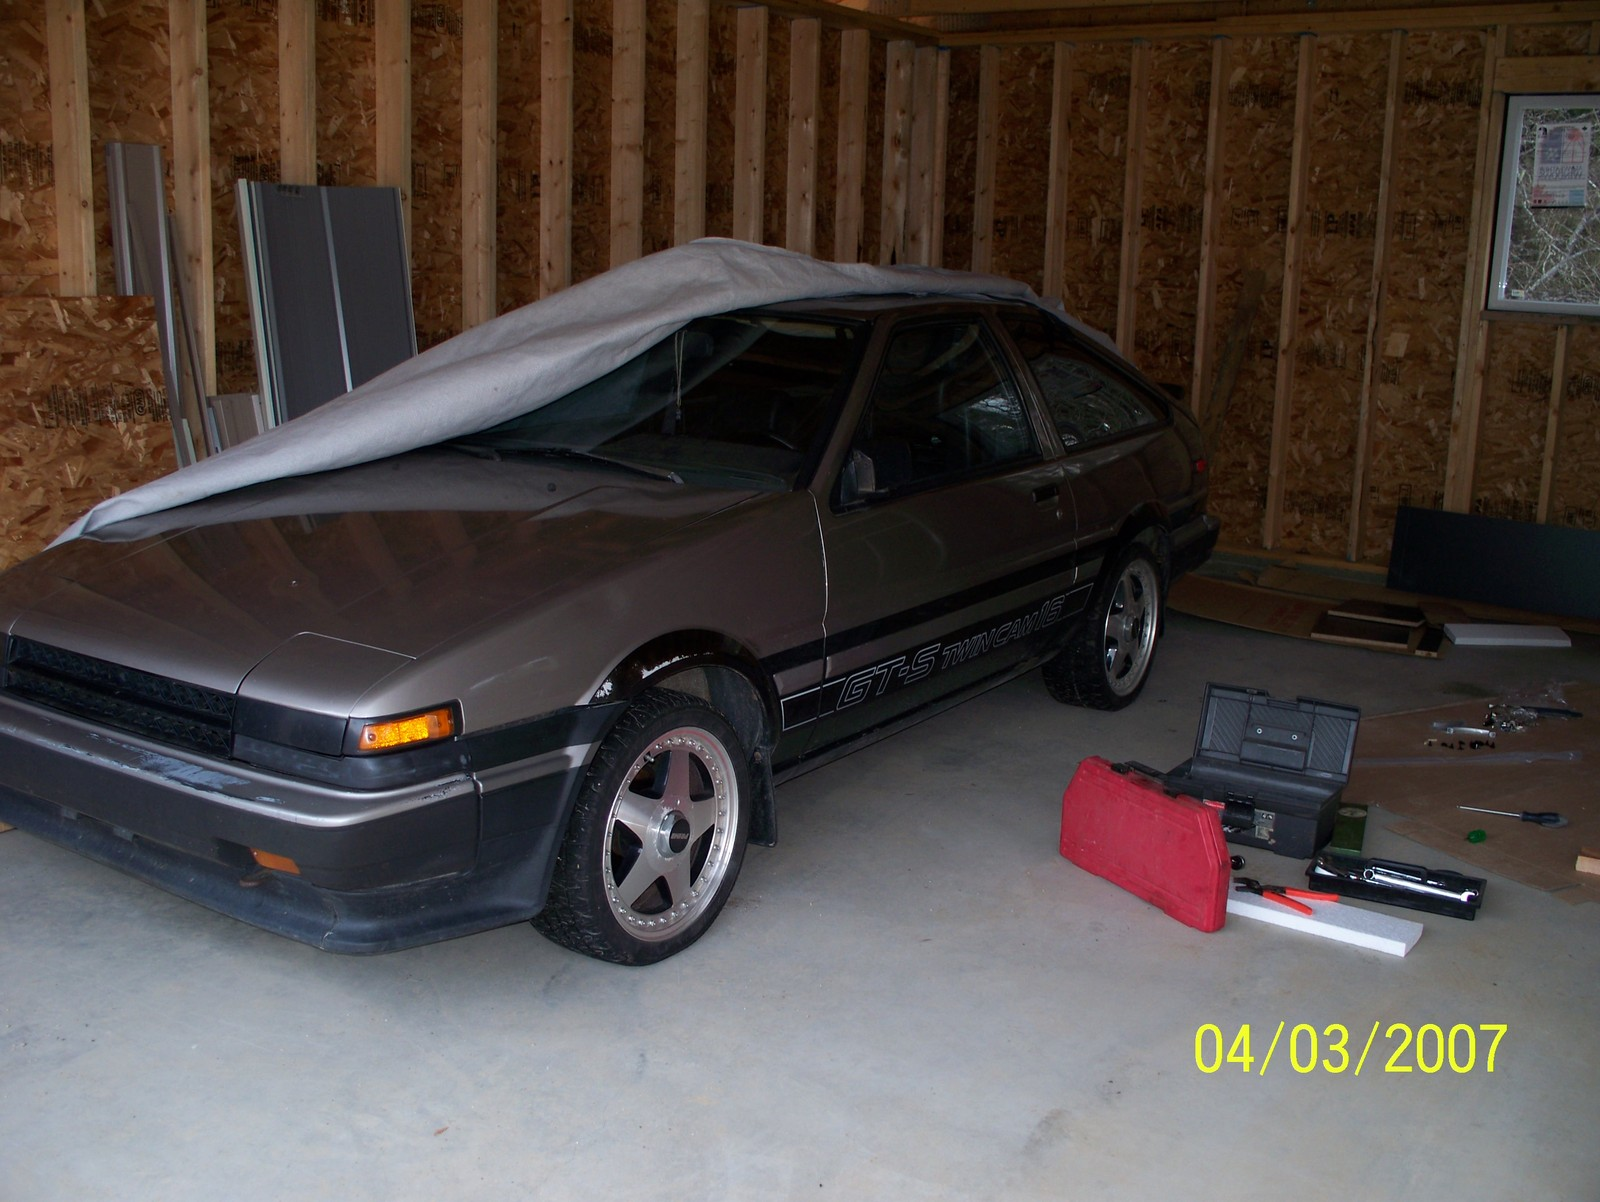 Gray and Black 1985 Toyota Corolla GT-S